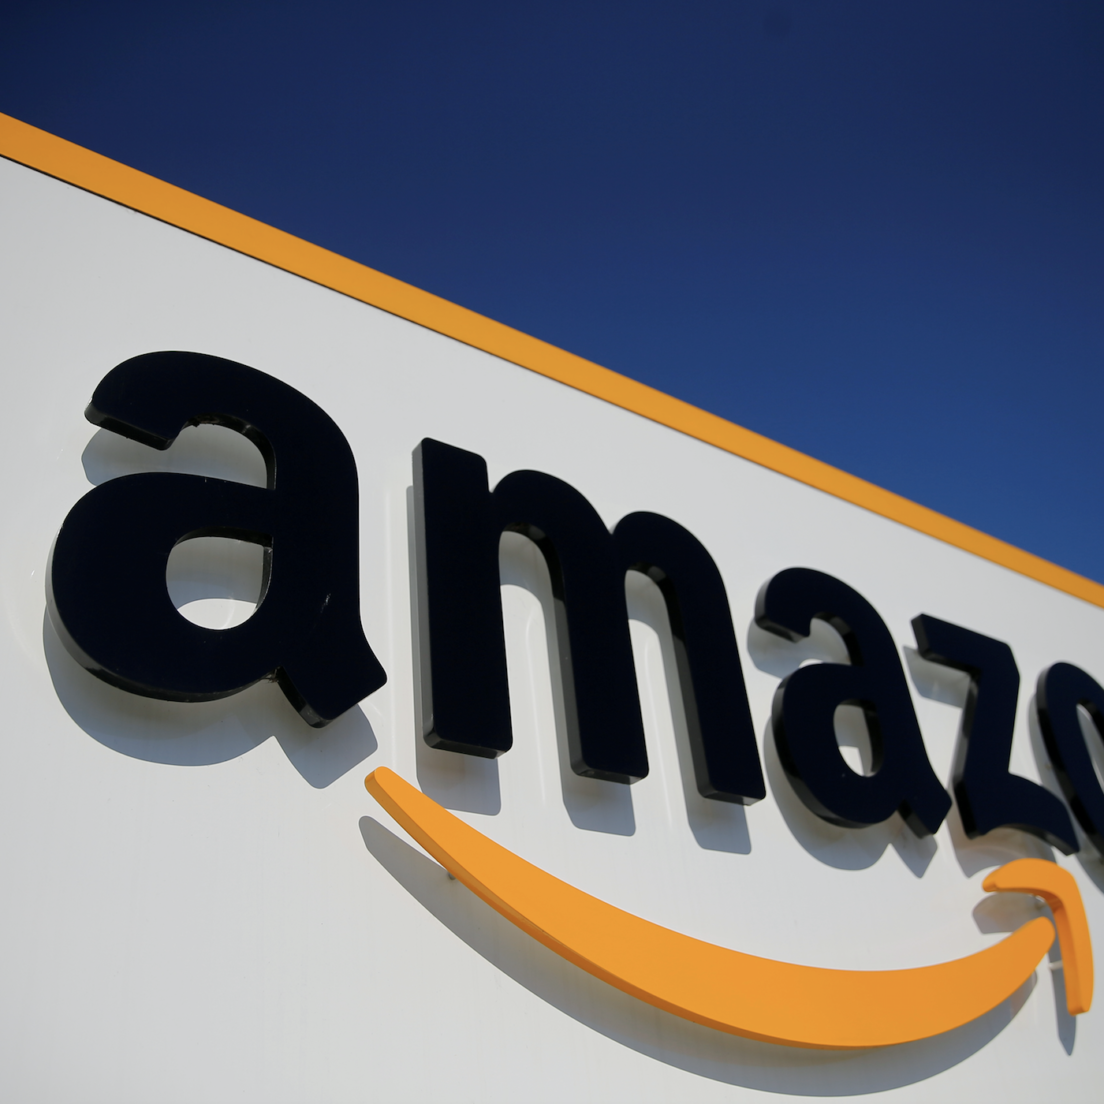 Amazon signs lease for massive warehouse in Maspeth